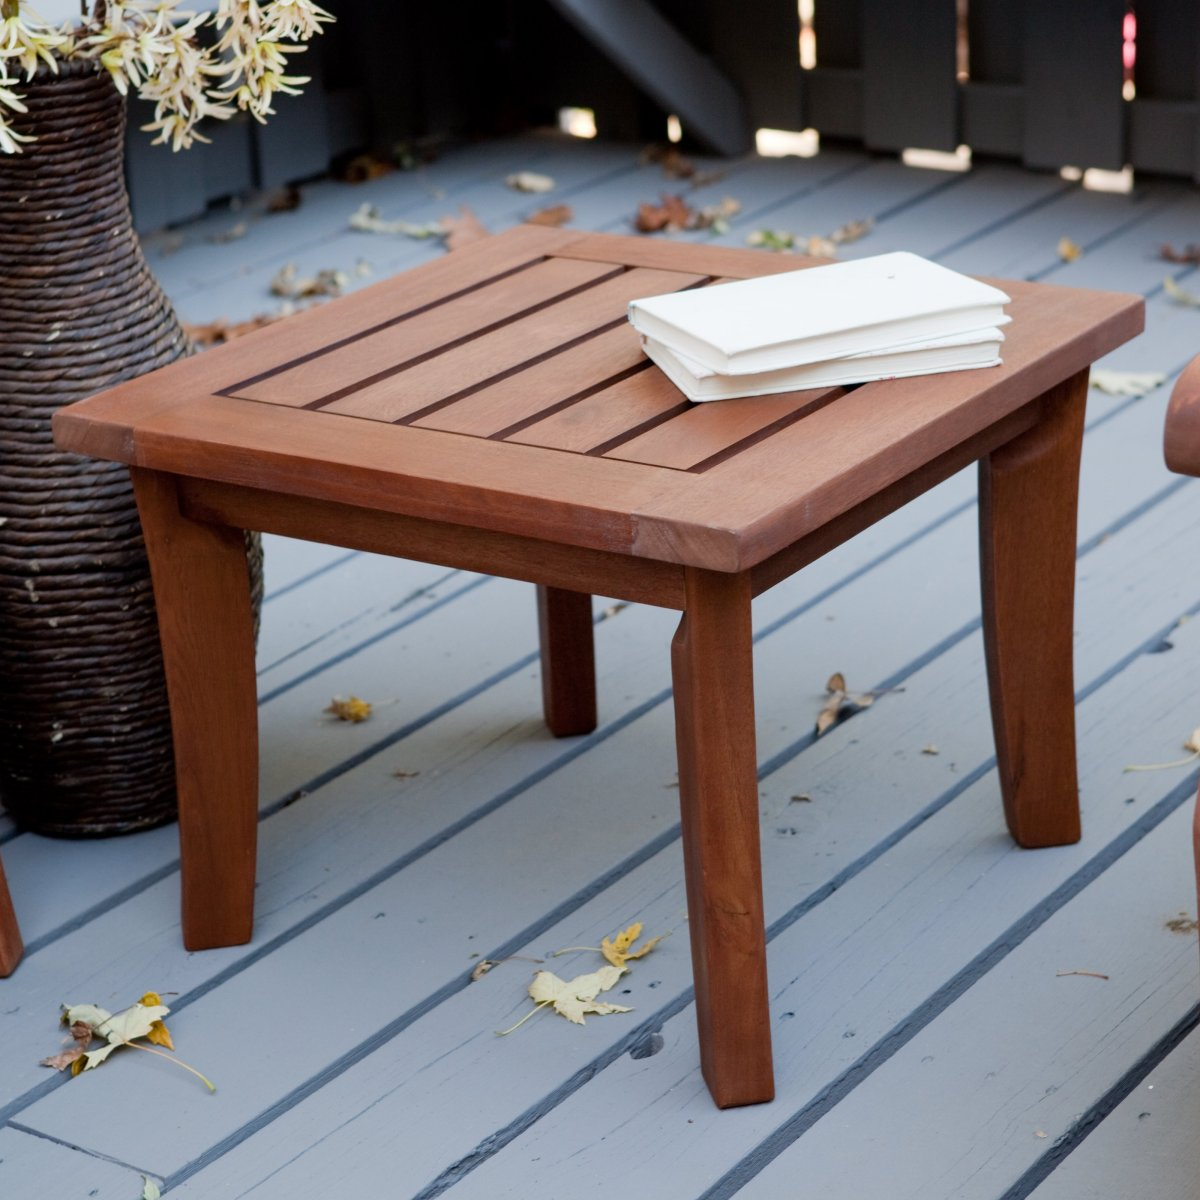 simple outdoor decor with patio side tables and solid wood table material tapered legs varnished natural wooden look garden accent originalviews living room suite astoria